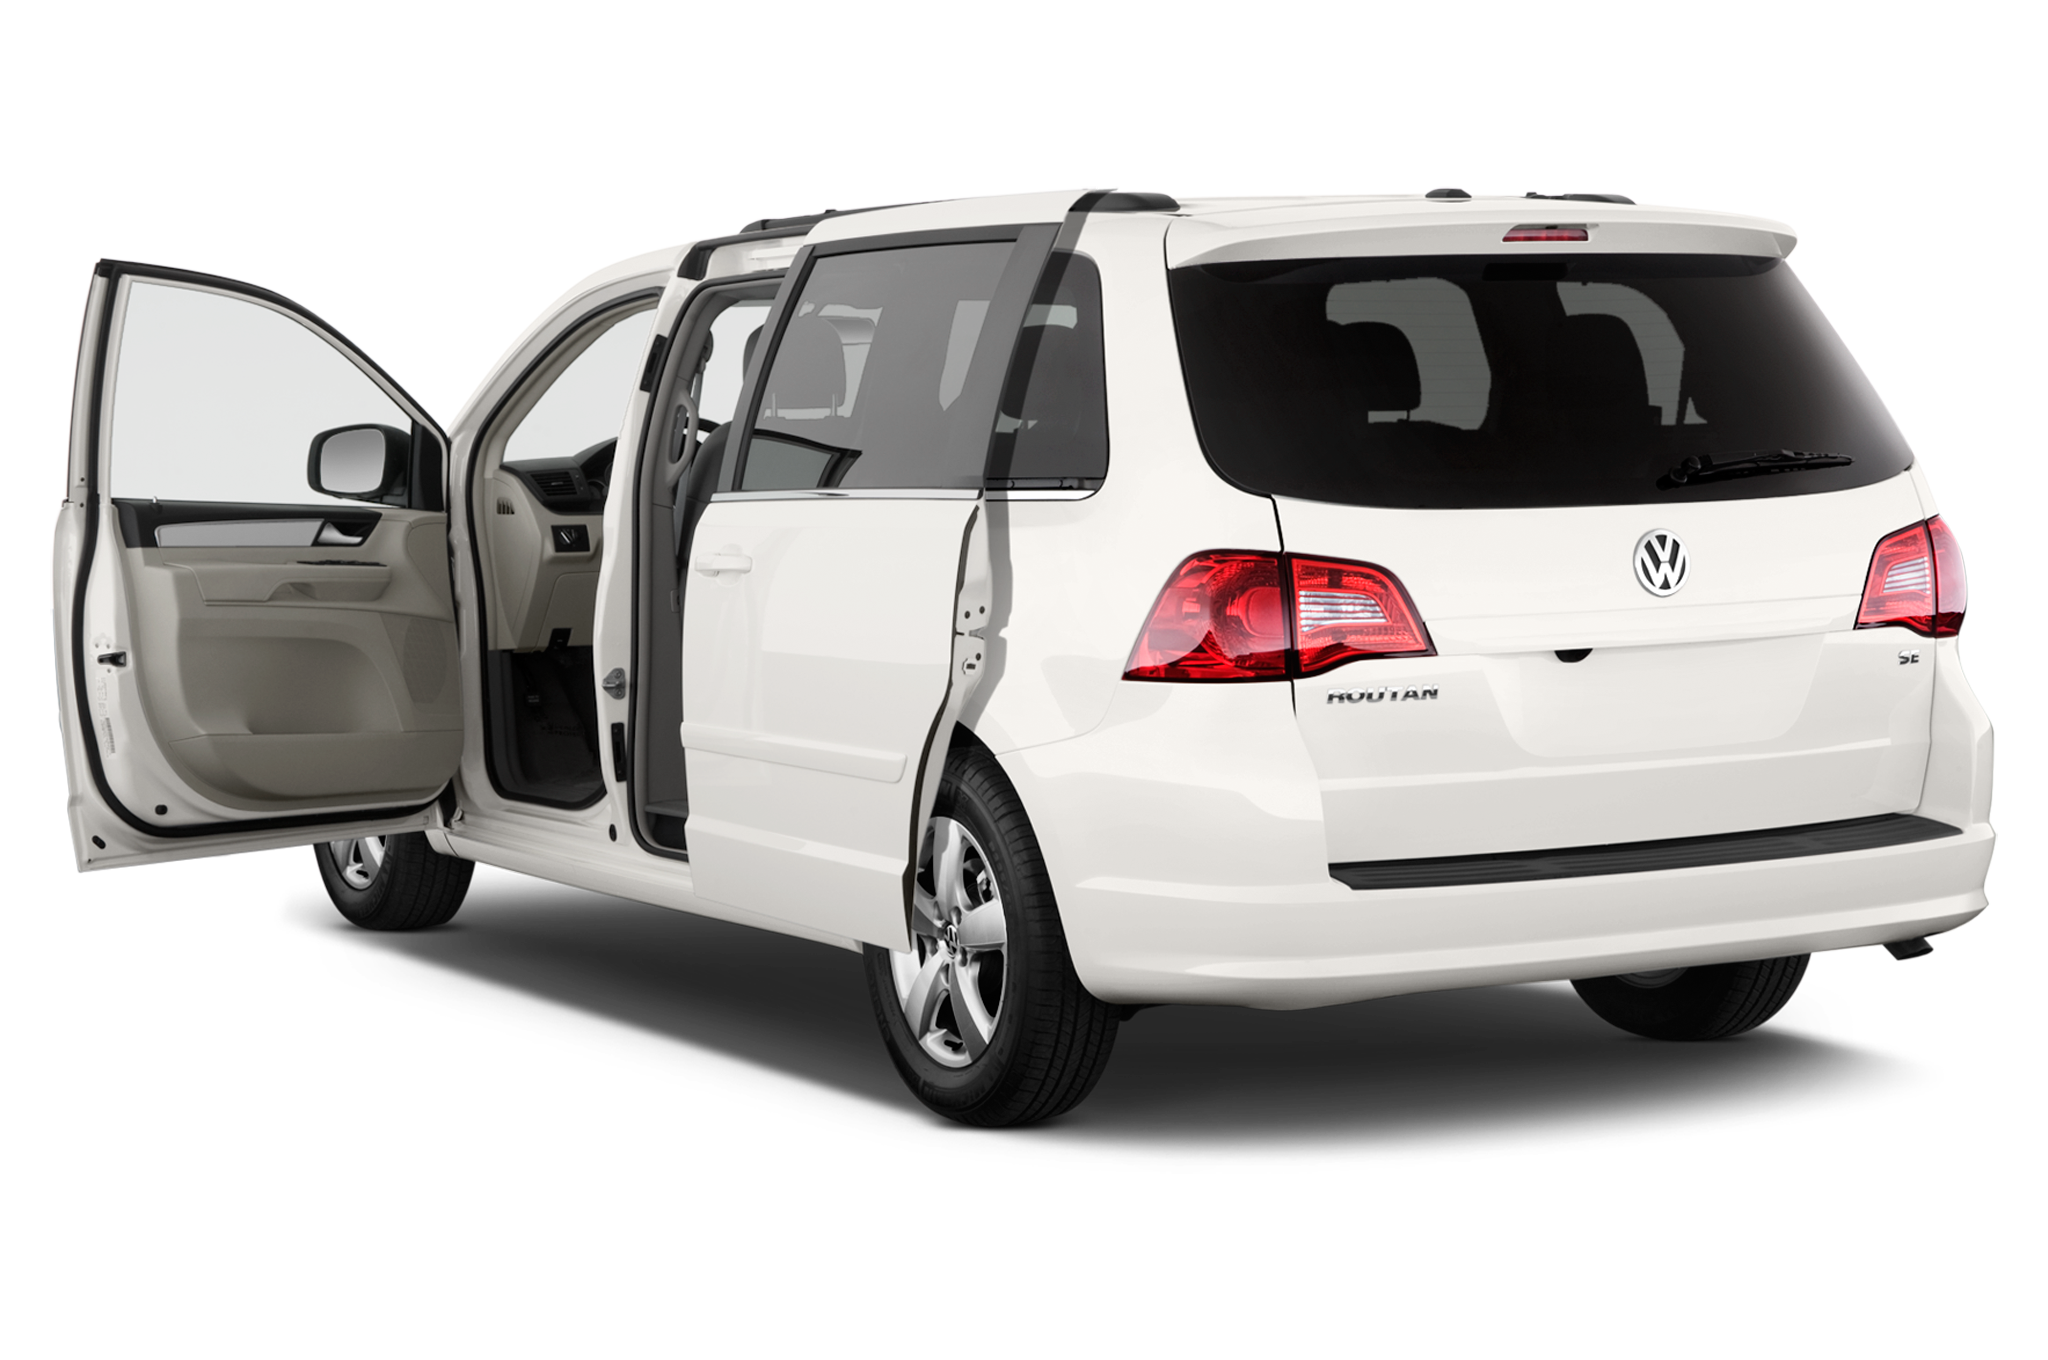 Volkswagen routan se wrse 2011 international price overview publicscrutiny Gallery